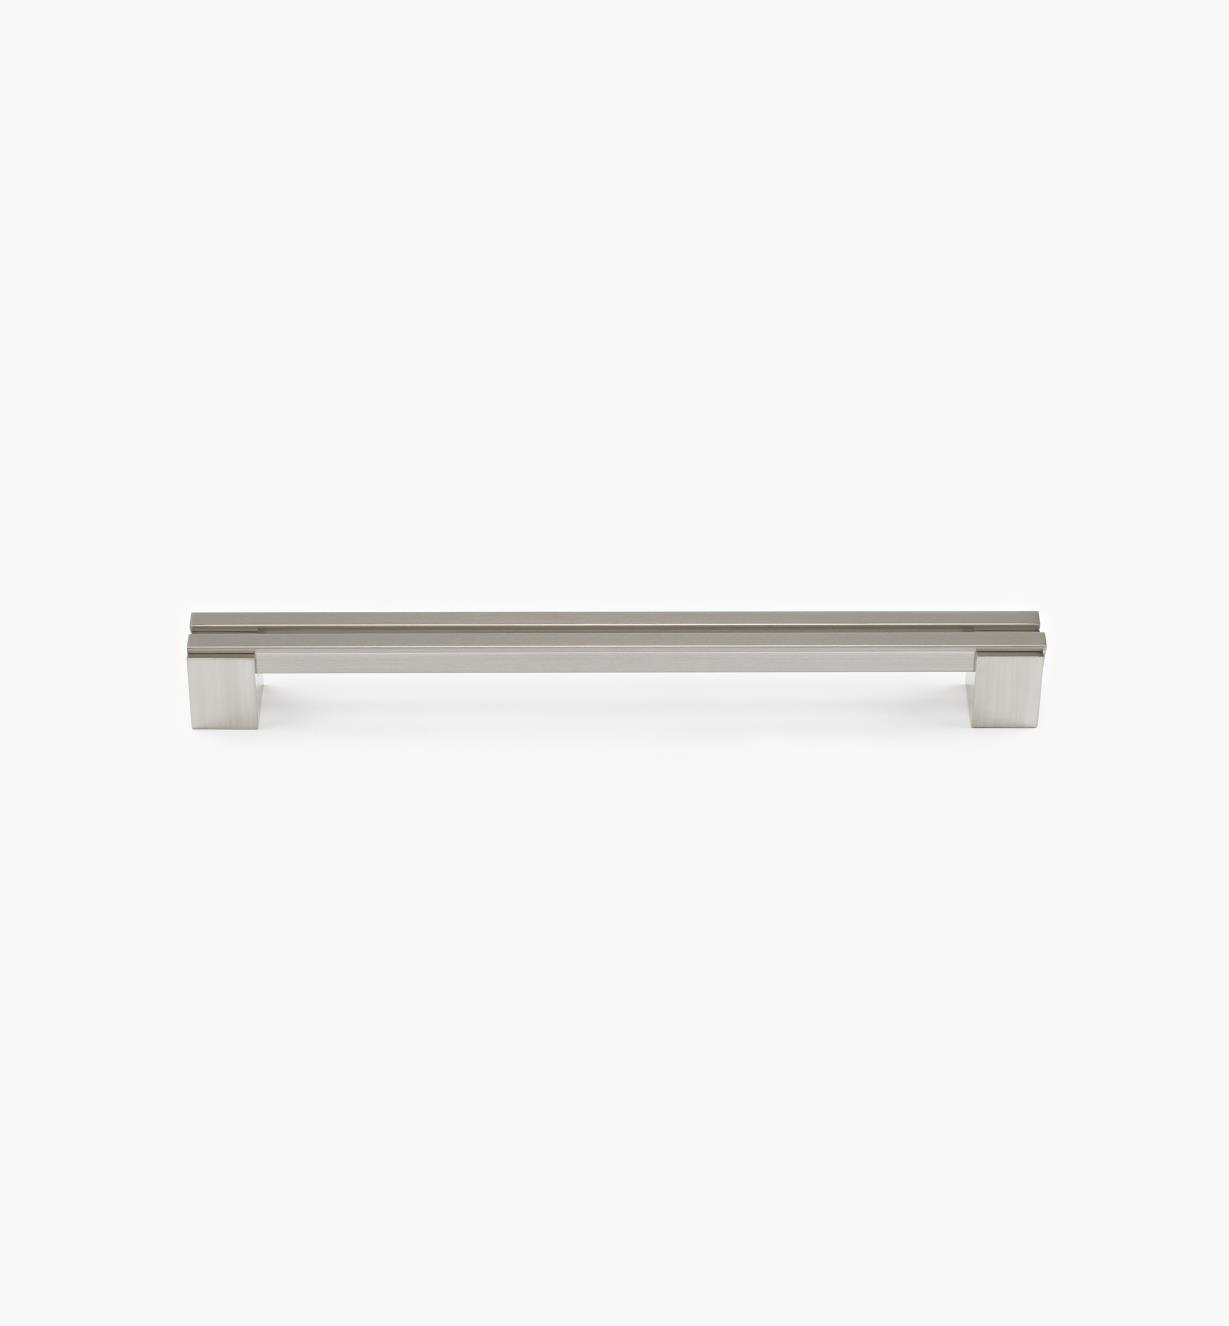 02W1353 - Parallel 256mm Satin Nickel Handle, each